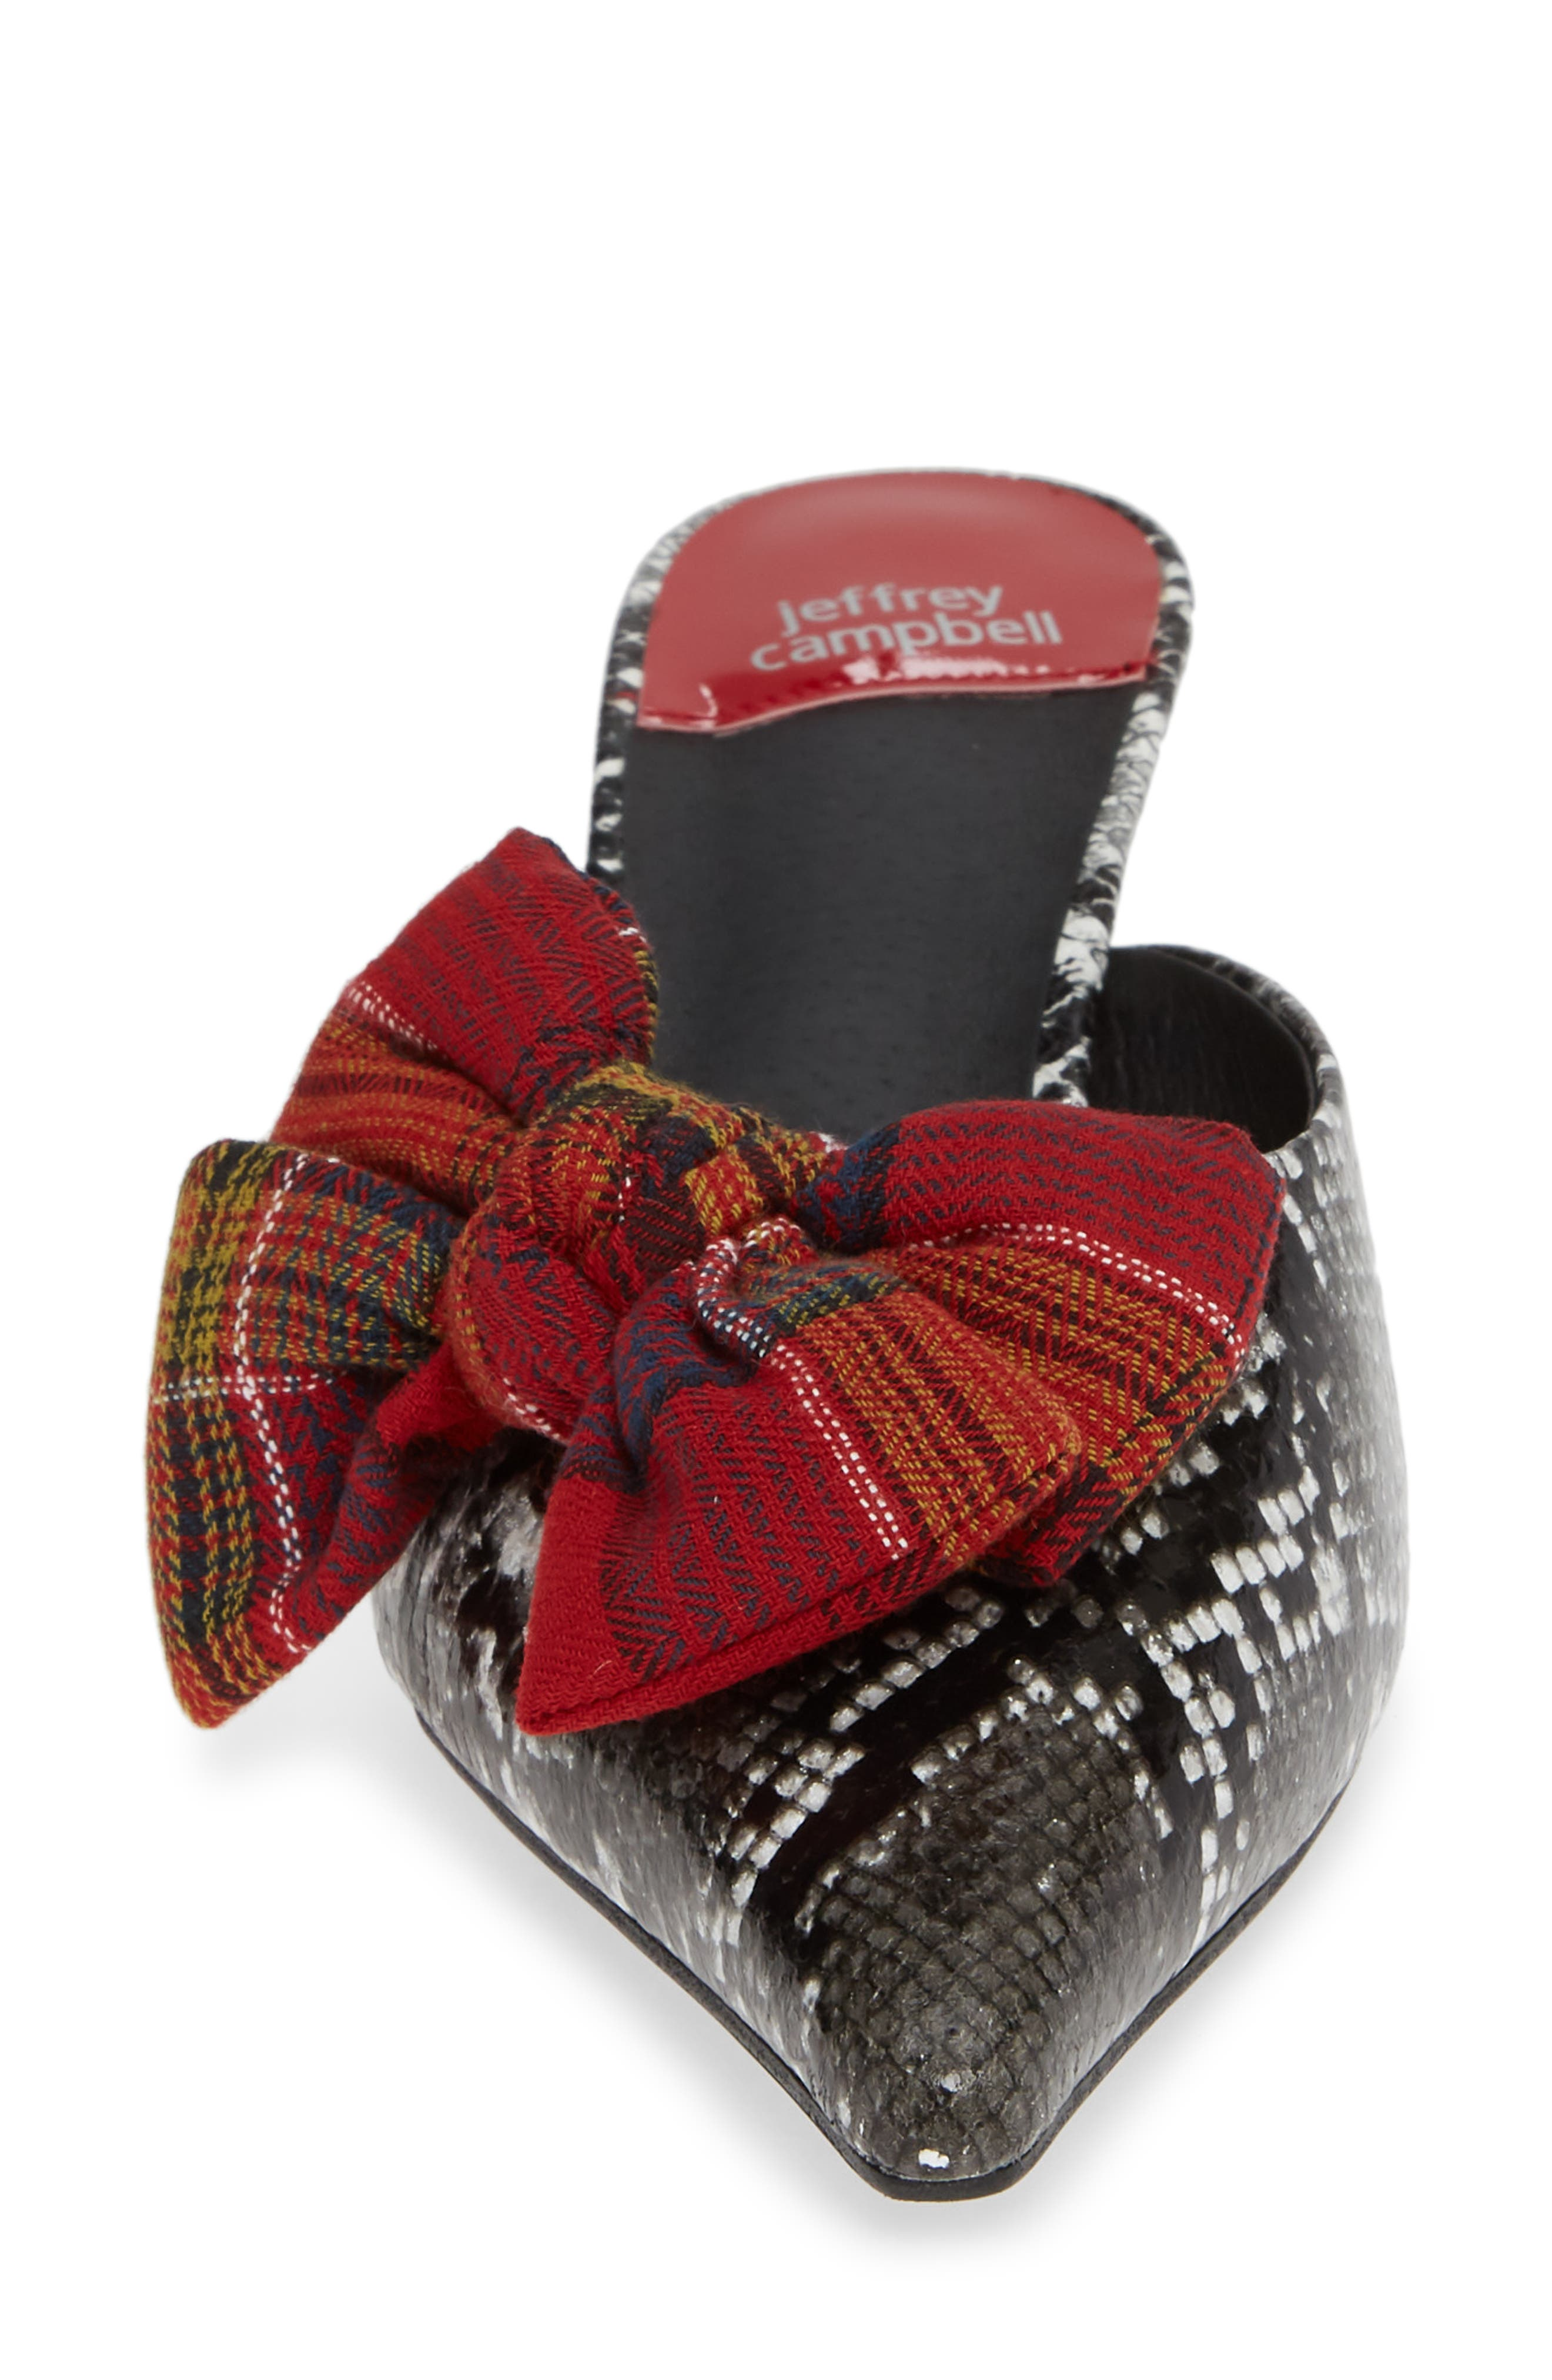 JEFFREY CAMPBELL, Adorn Pointy Toe Mule, Alternate thumbnail 4, color, GREY BLACK SNAKE / RED PLAID